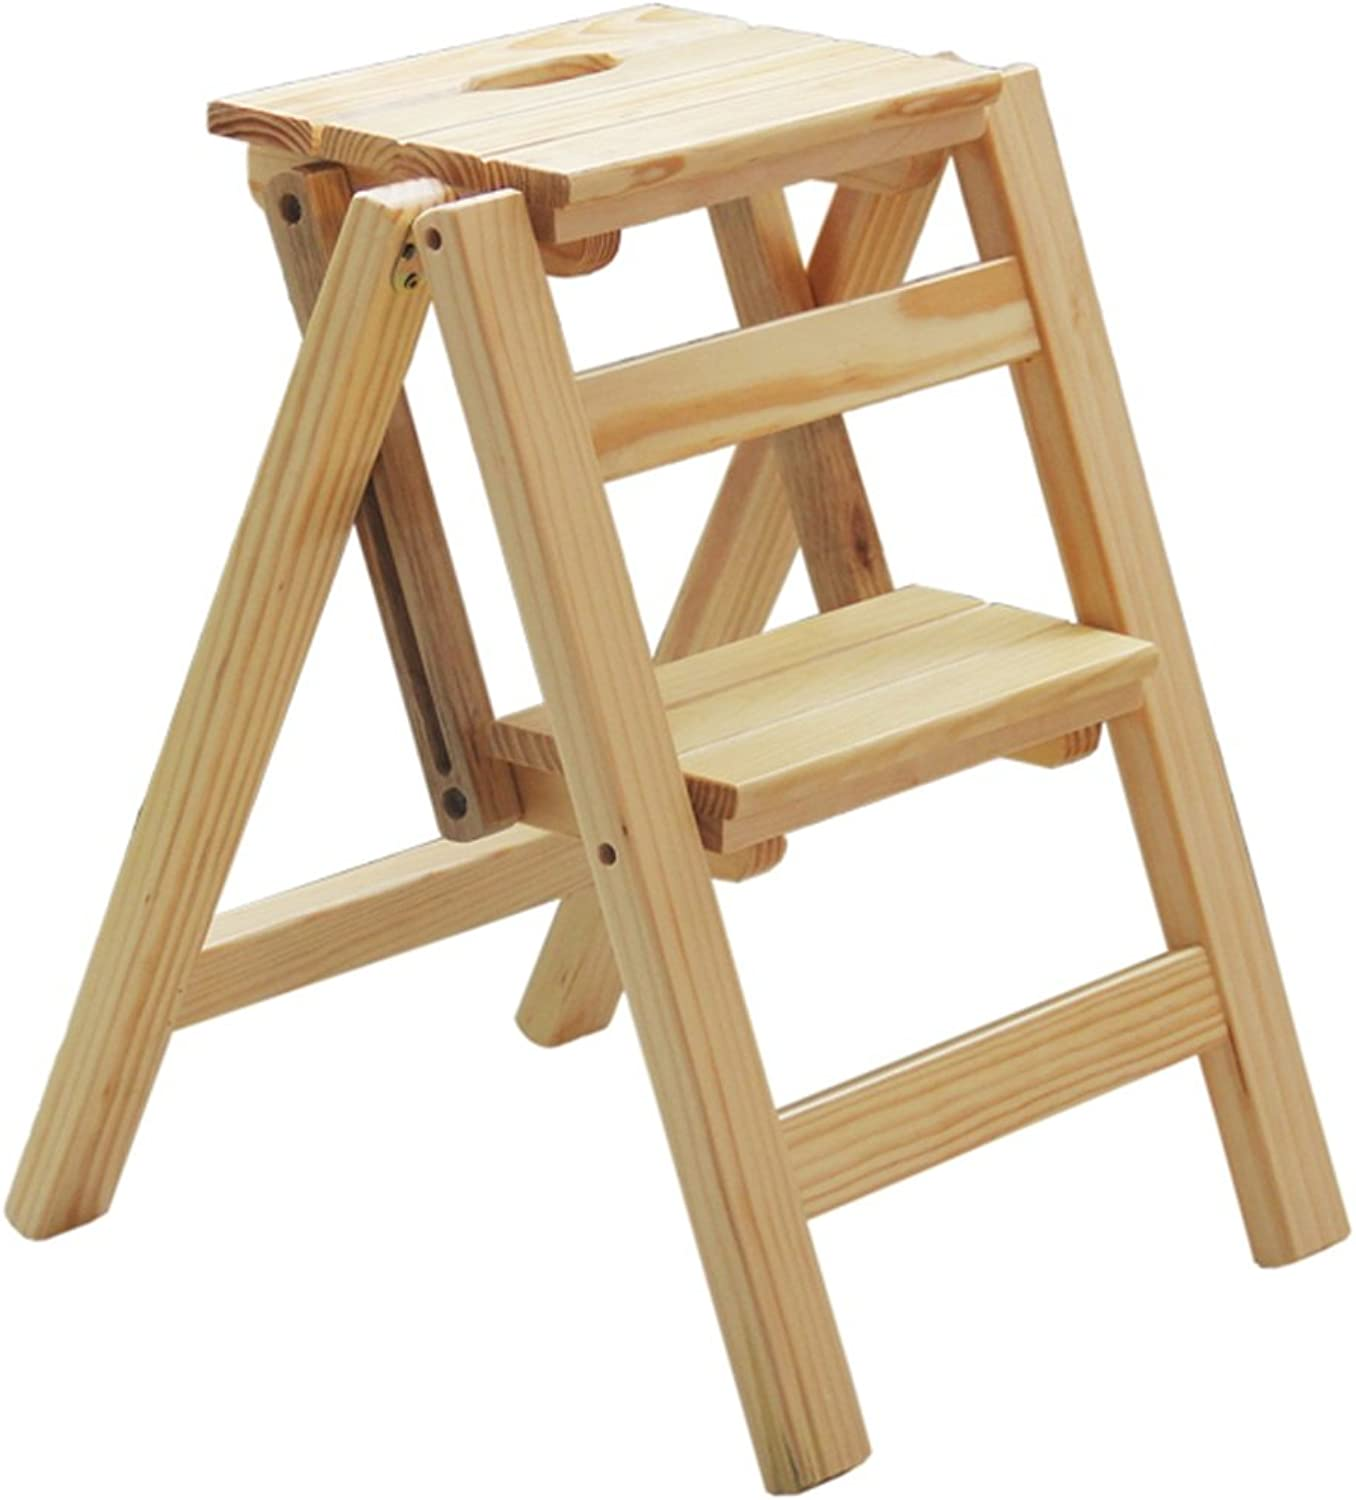 Hai Yan Portable Step Stool Solid Wood Household Ladder - Multi-Function Folding Ladder, Indoor Climbing Wooden Ladder Rack Height 66cm (26.4 Inches) (color   B, Size   47cm)